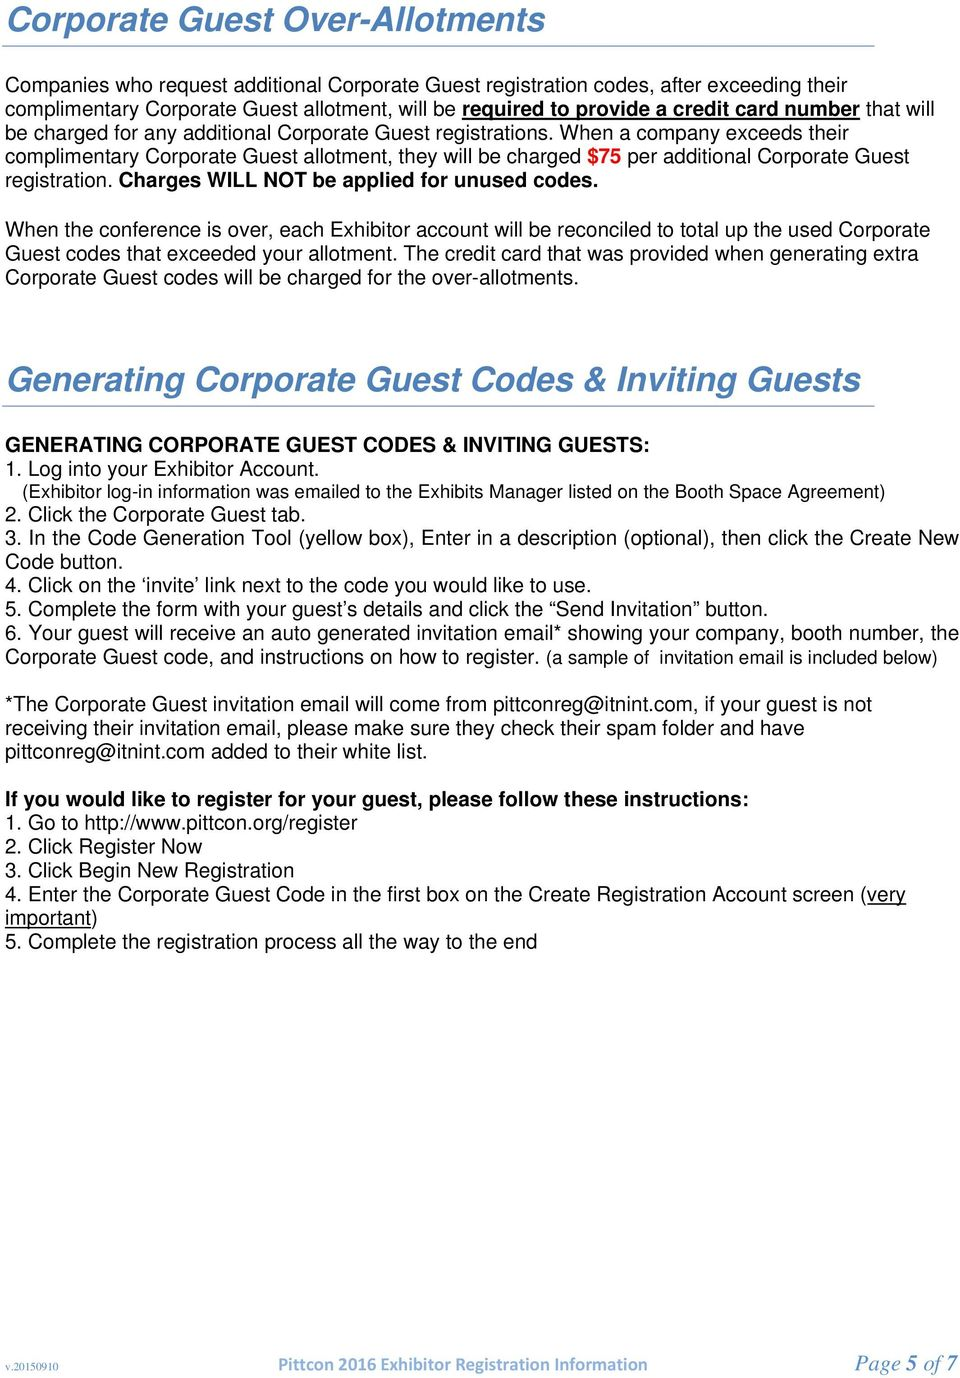 When a company exceeds their complimentary Corporate Guest allotment, they will be charged $75 per additional Corporate Guest registration. Charges WILL NOT be applied for unused codes.